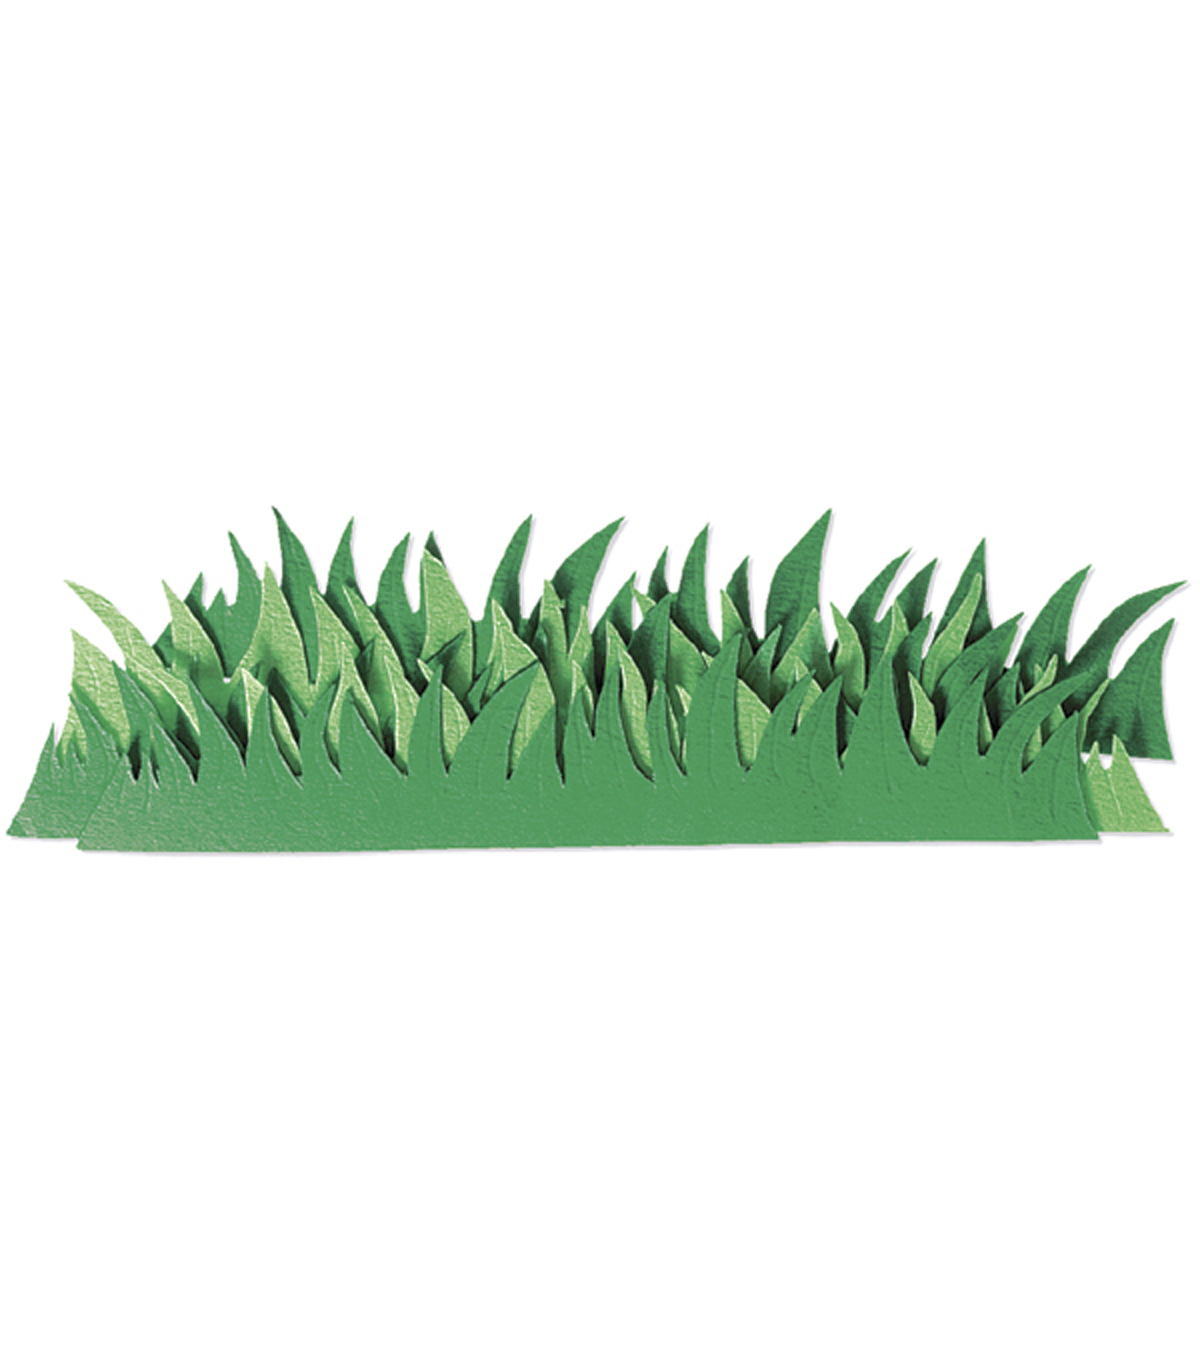 "Jolee's By You Dimensional Embellishments 2""X4"" Sheet- Grass"